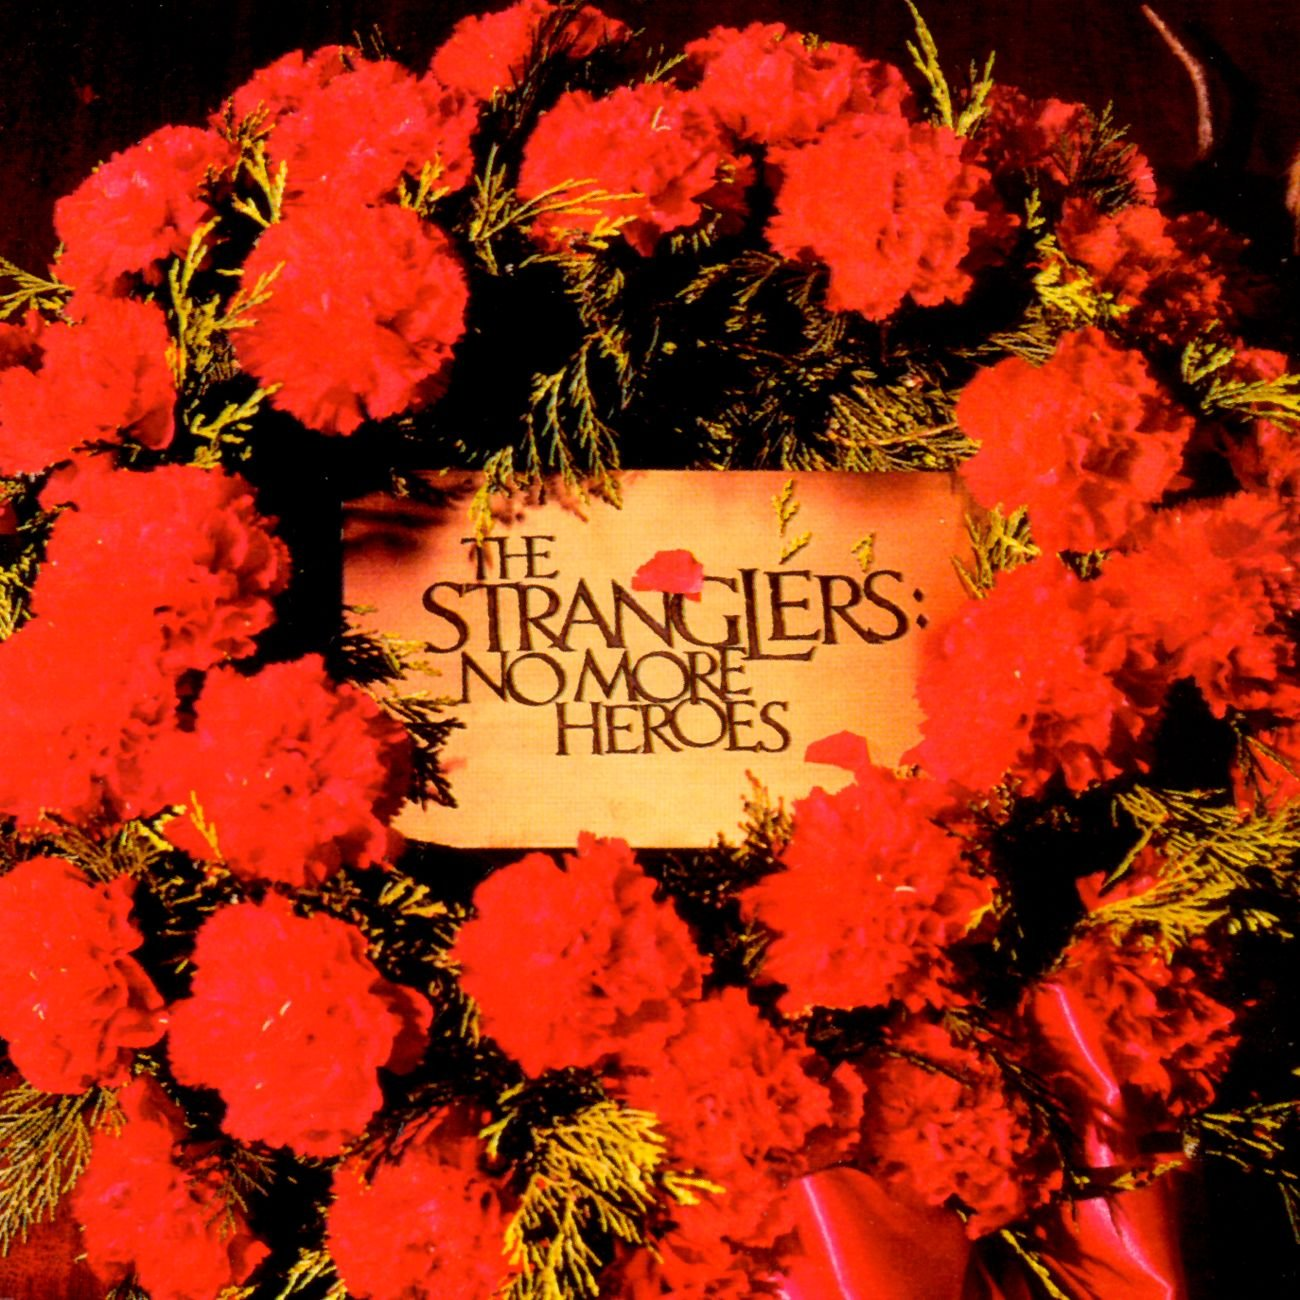 No More Heroes: Stranglers, The: Amazon.fr: Musique